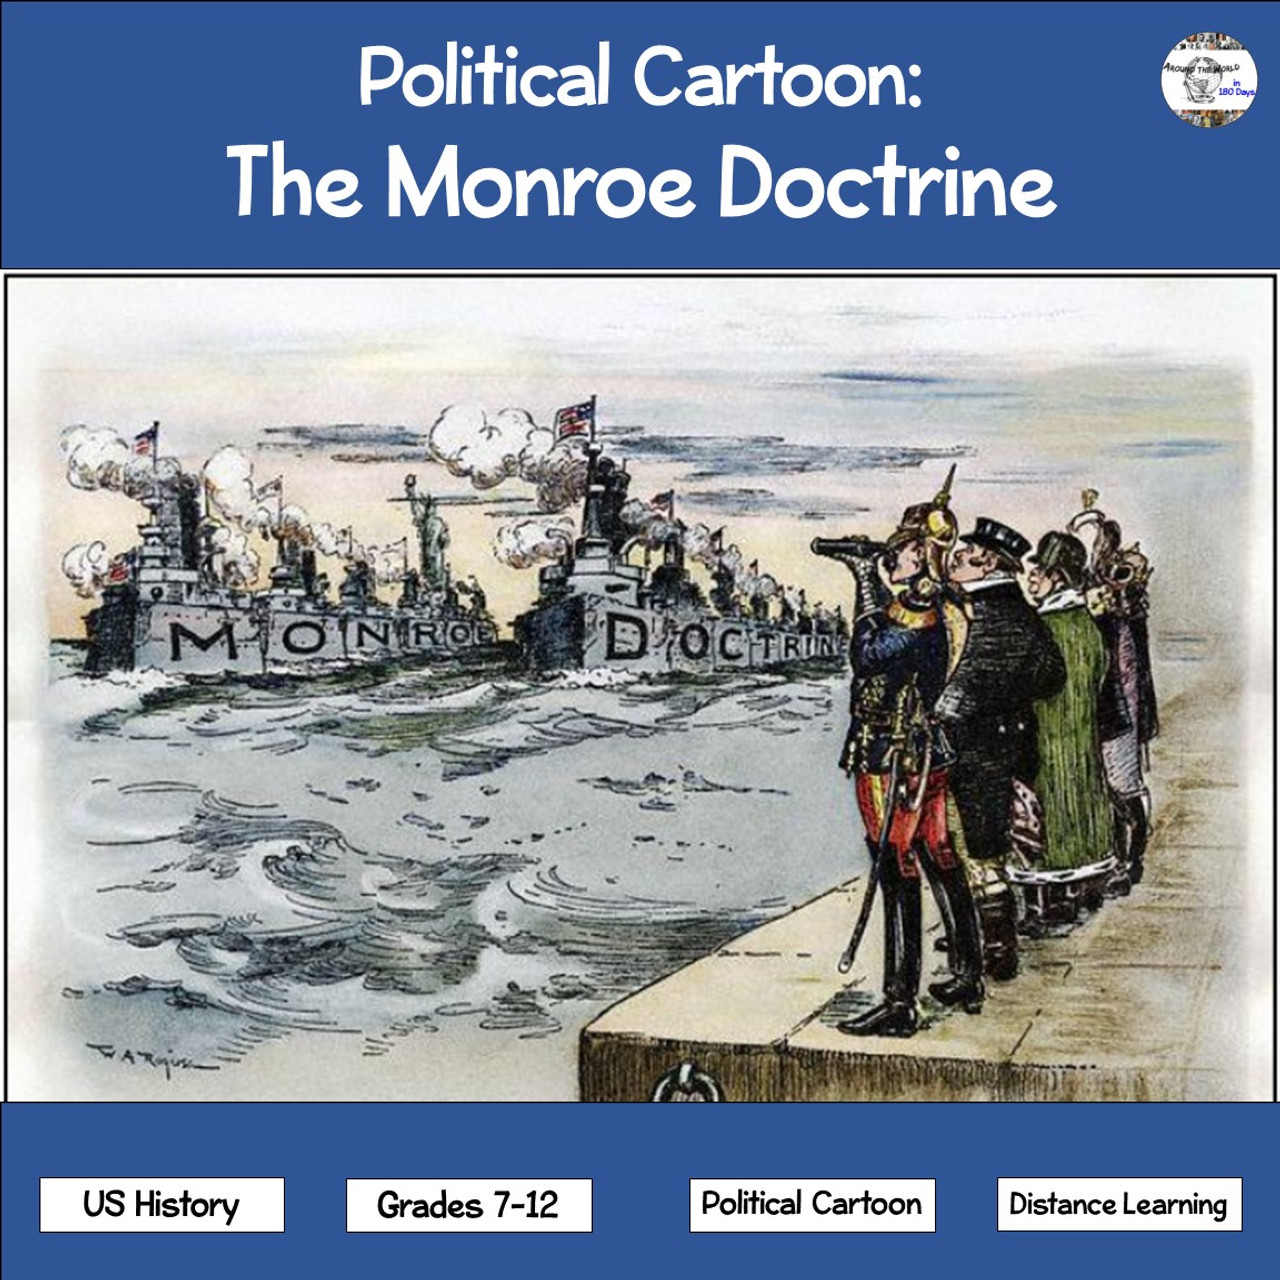 medium resolution of Political Cartoon: The Monroe Doctrine - Amped Up Learning